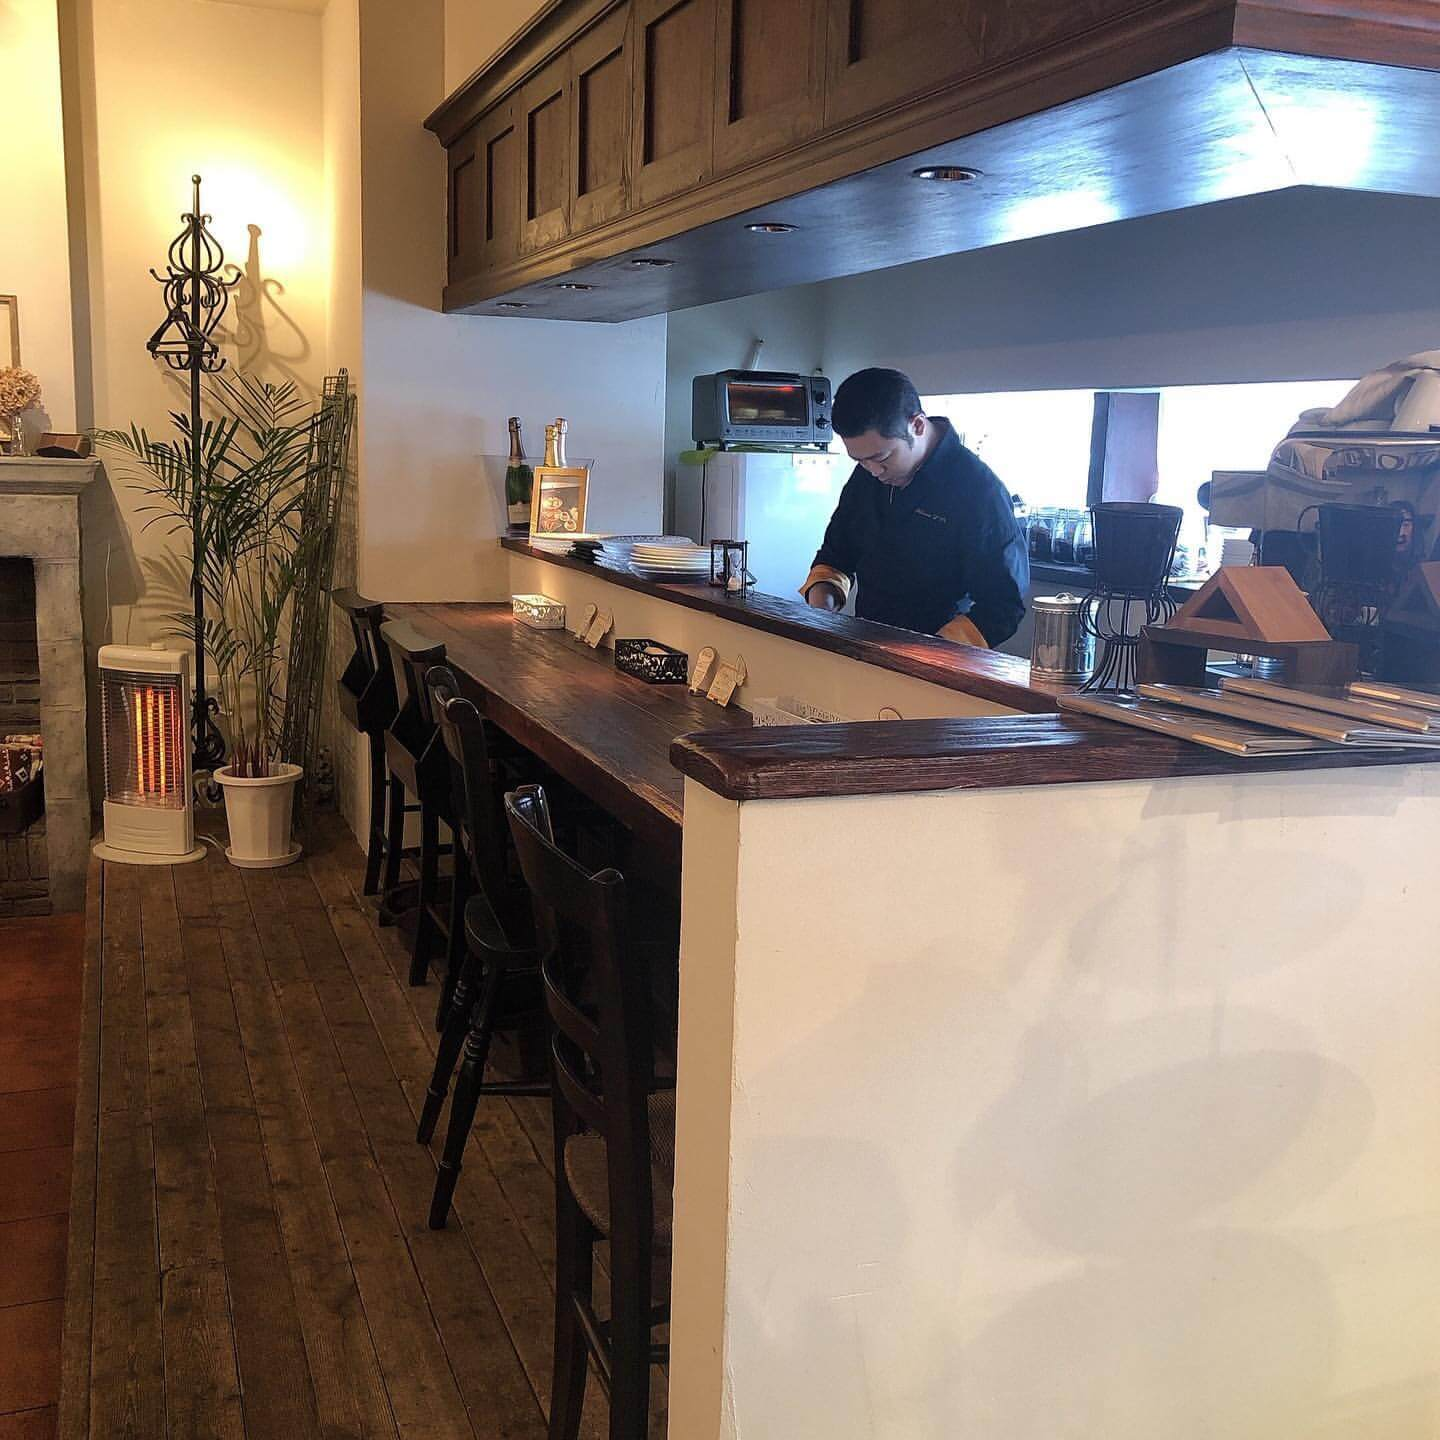 Patisserie cafe L'Or(パティスリーカフェ ロール)の店内